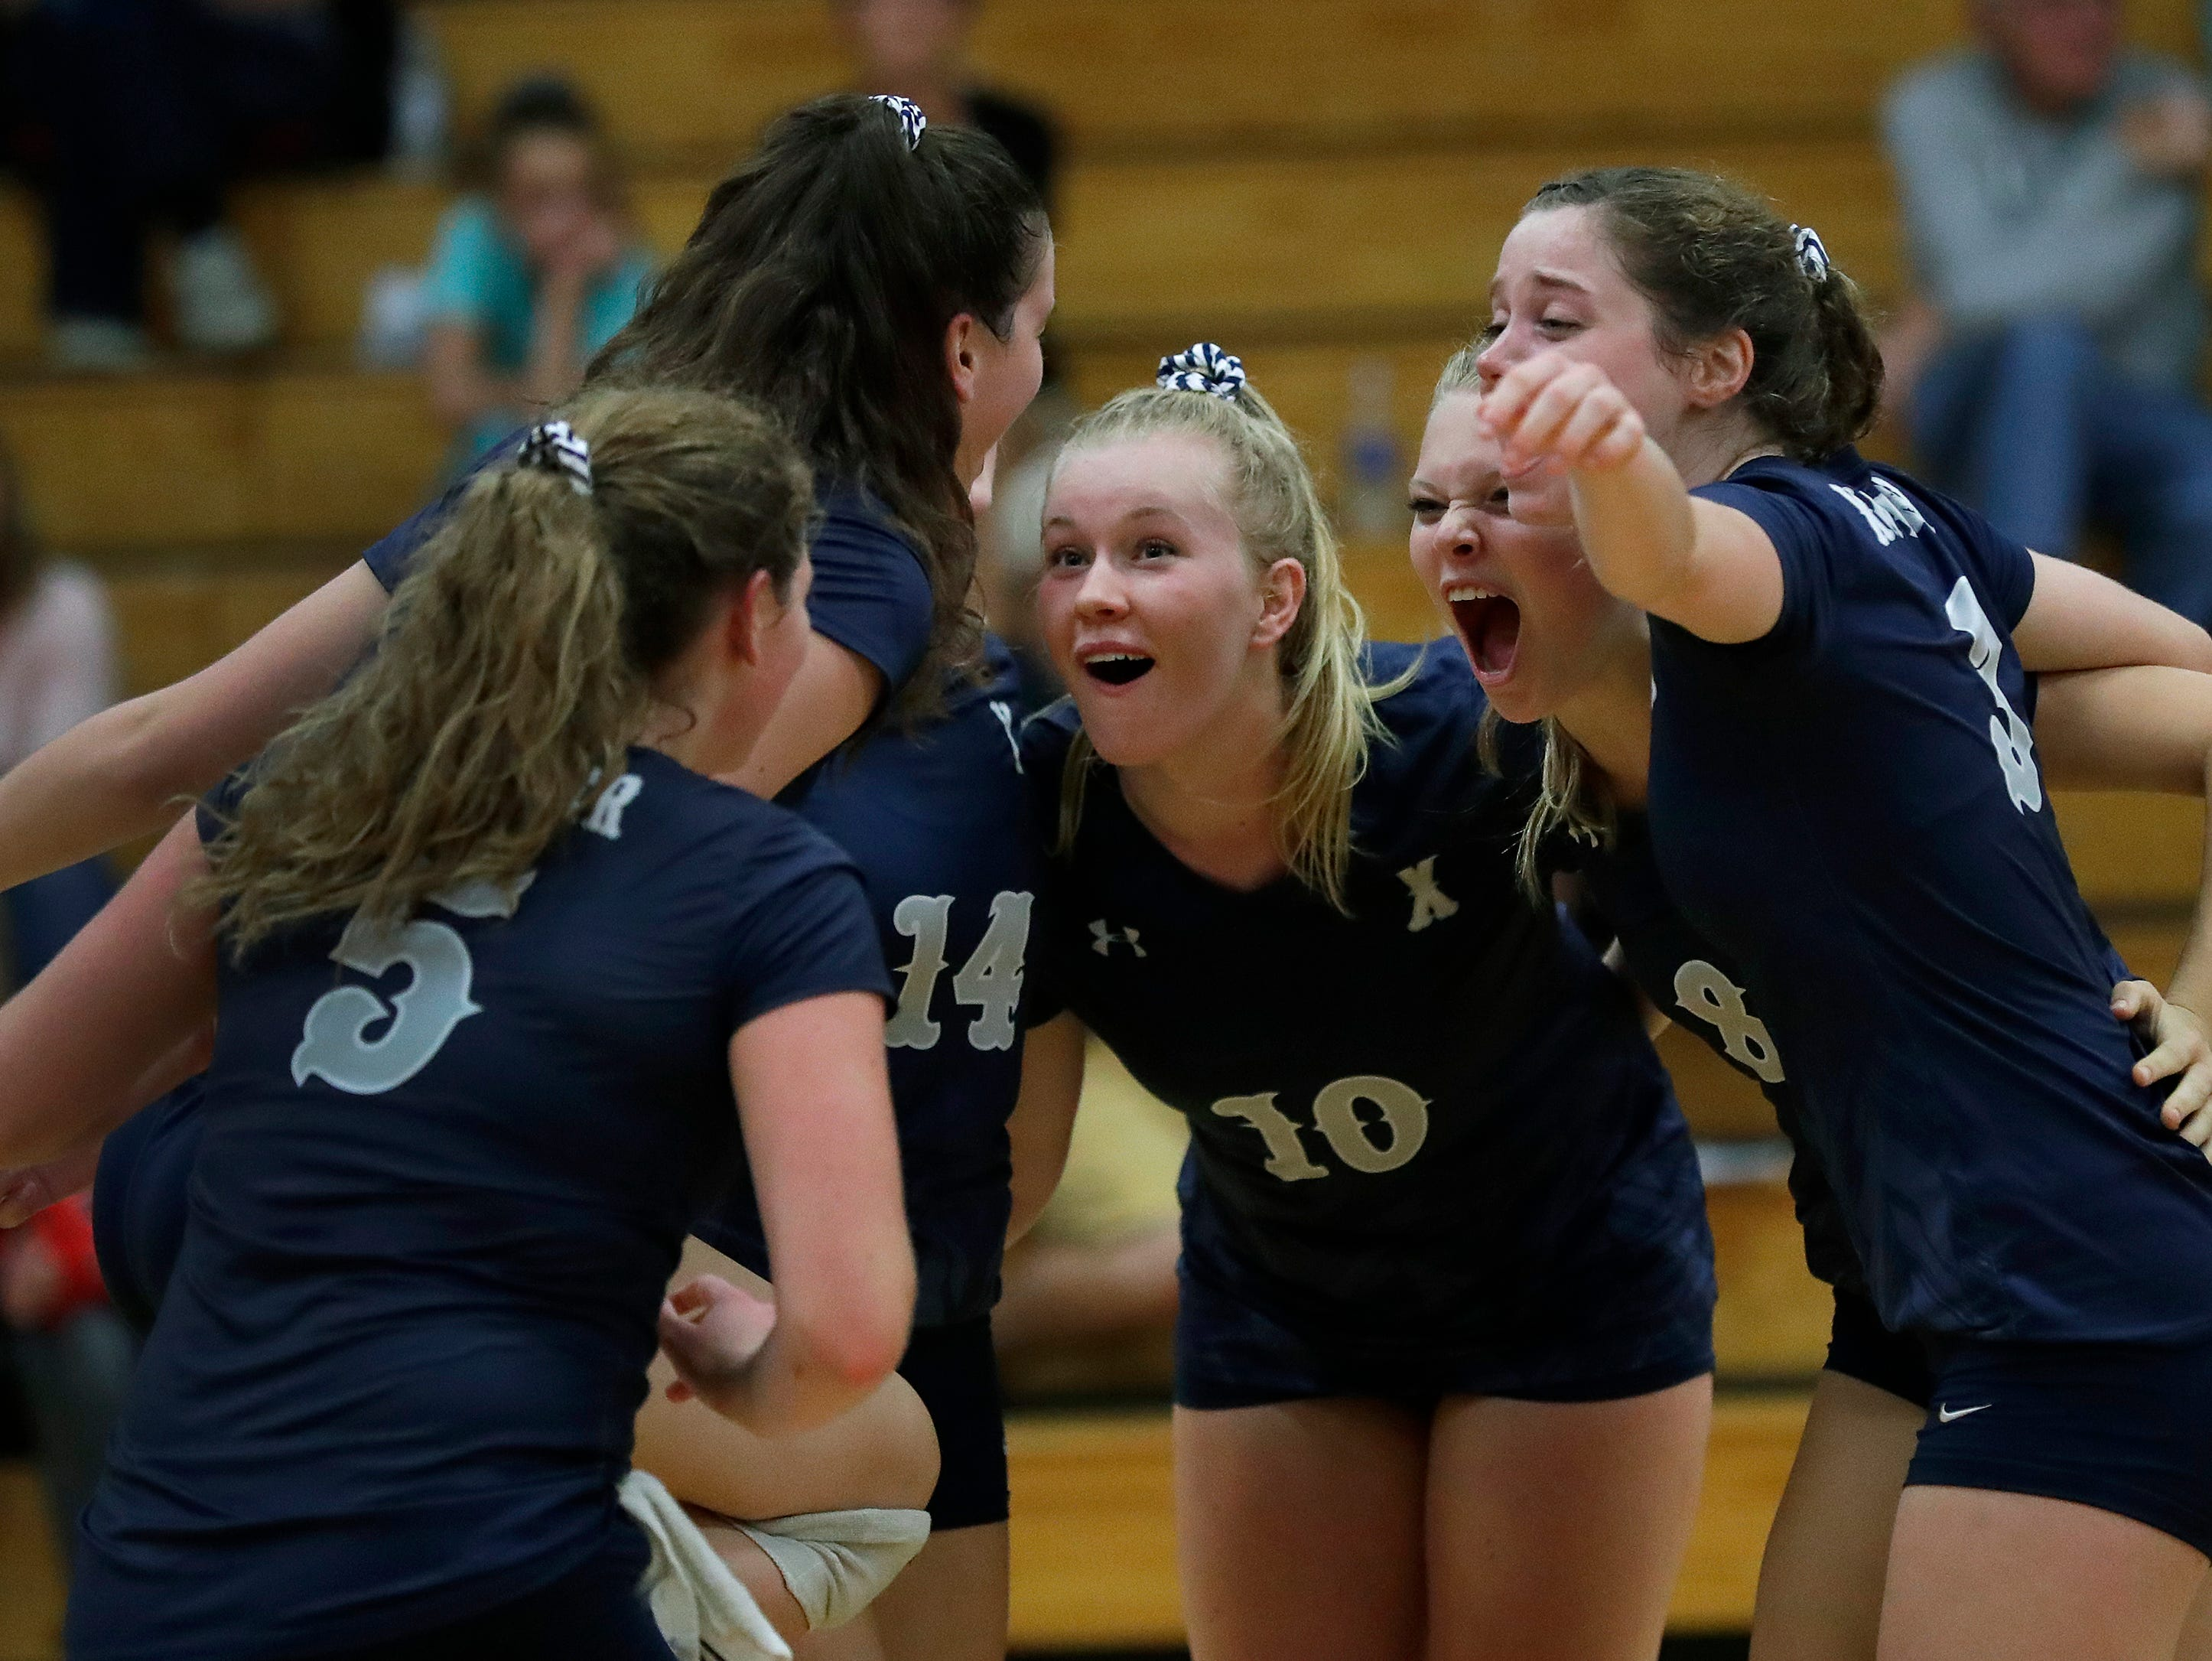 Xavier High School's players celebrate winning a point against New London High School during their girls volleyball match Thursday, Sept. 13, 2018, in Appleton, Wis. Dan Powers/USA TODAY NETWORK-Wisconsin